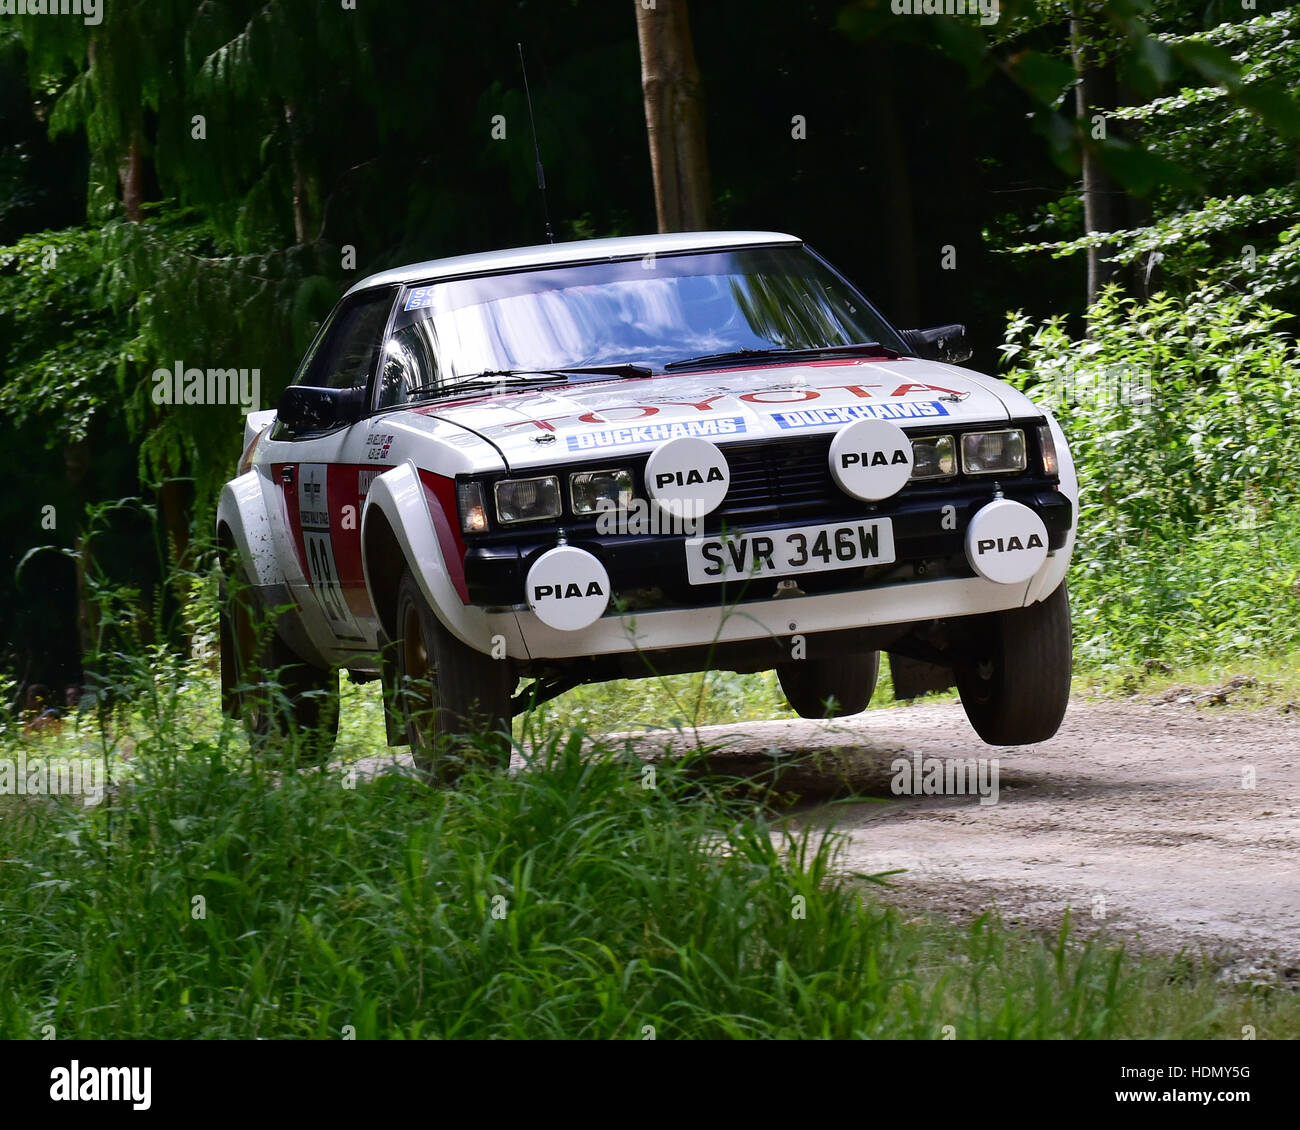 Toyota Rally Cars Stock Photos & Toyota Rally Cars Stock Images ...